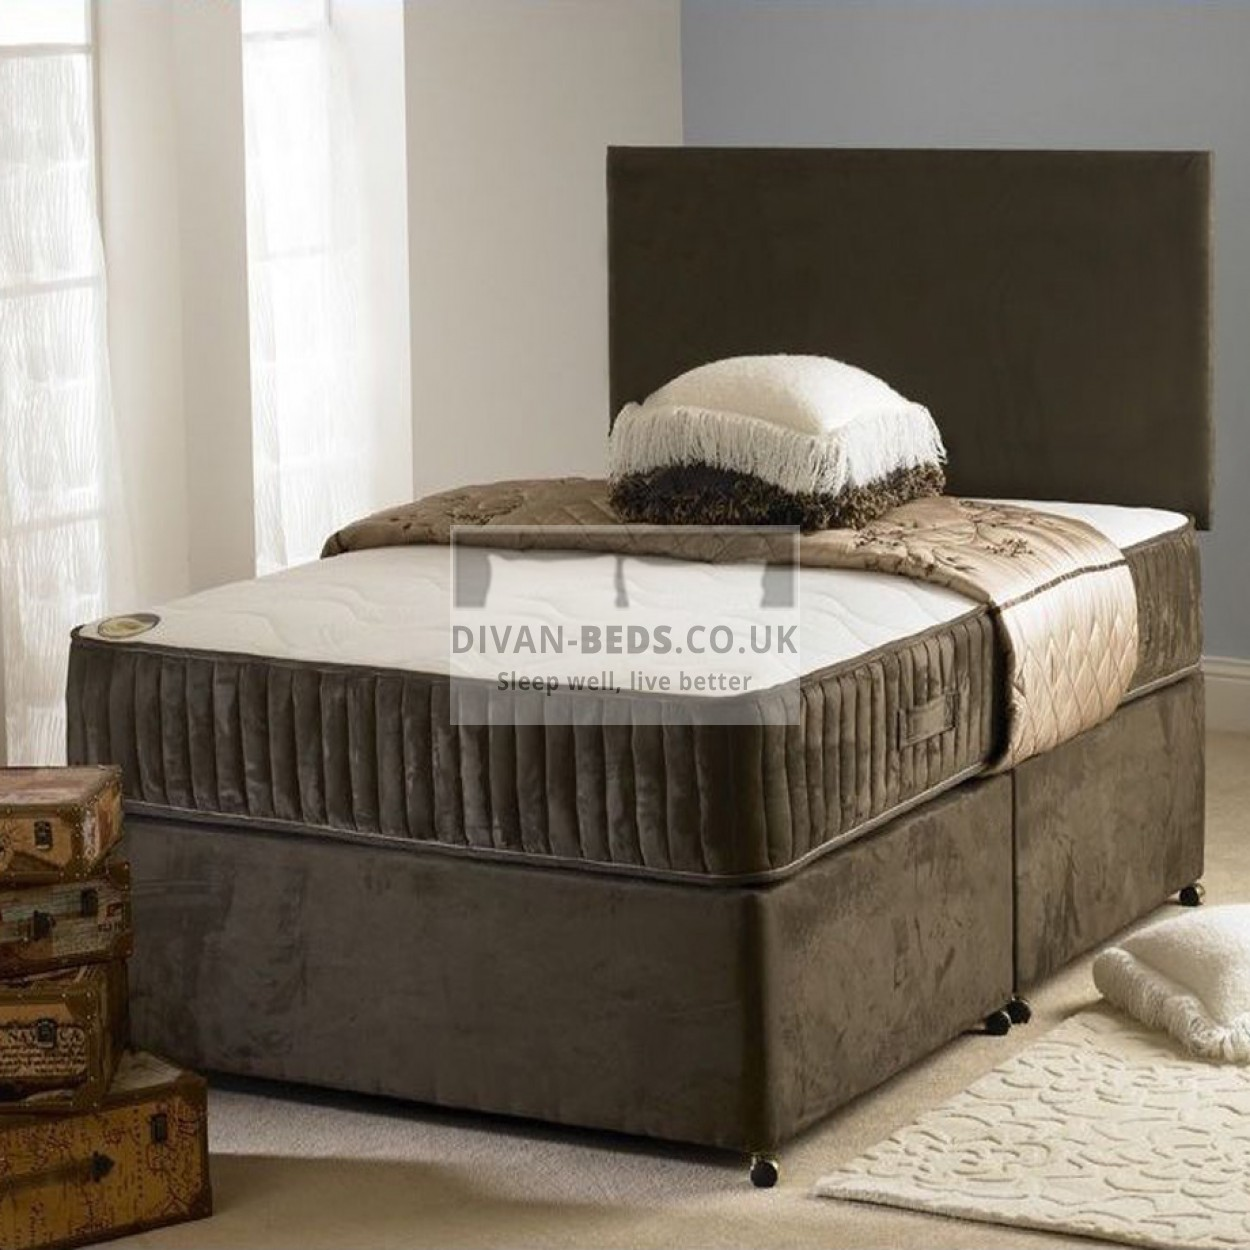 Carlo divan bed with spring memory foam mattress for Divan bed quick delivery